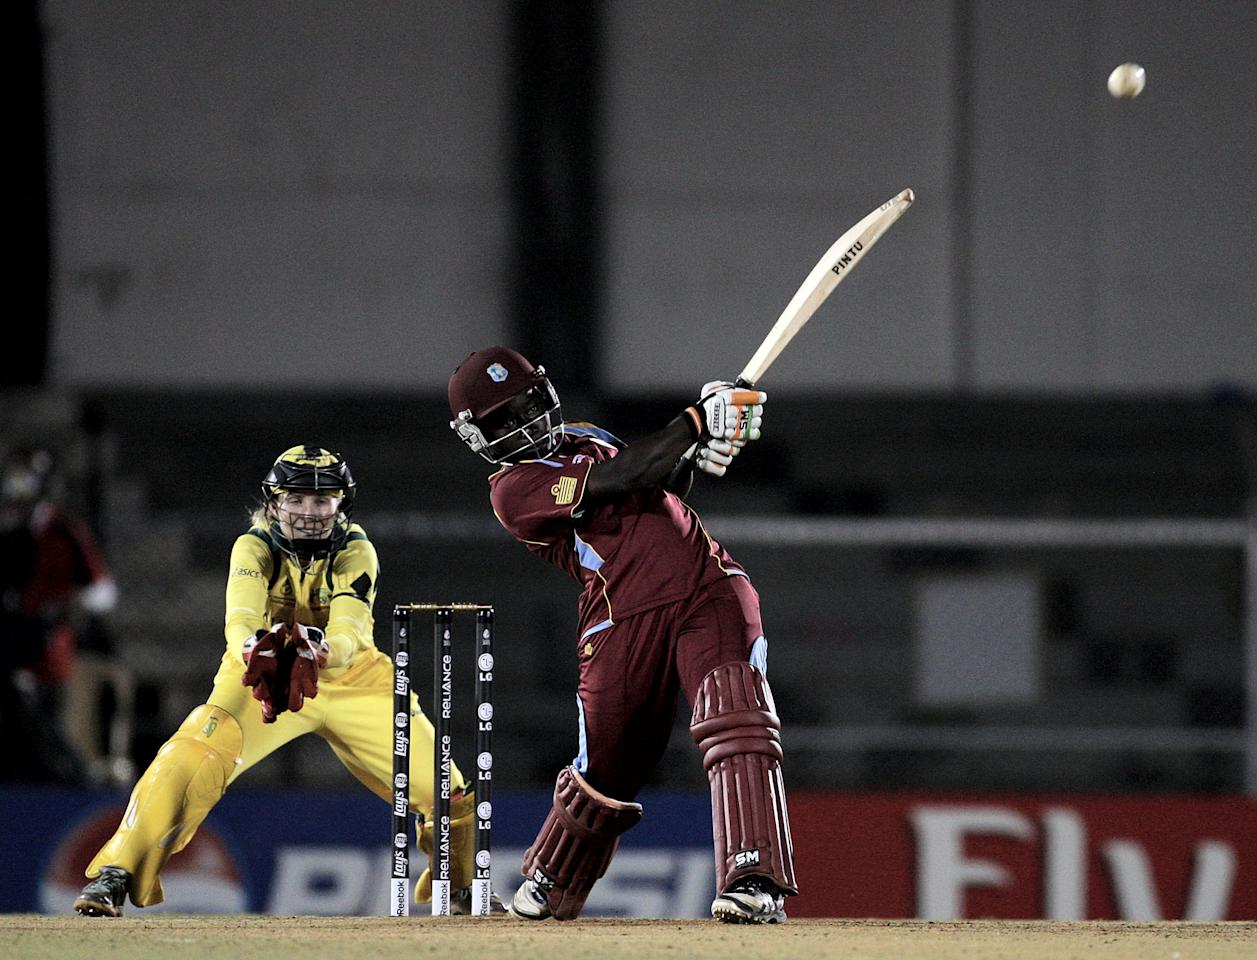 MUMBAI, INDIA - FEBRUARY 17:  Deandra Dottin of West Indies batting during the final between Australia and West Indies of the Women's World Cup India 2013 played at the Cricket Club of India ground on February 17, 2013 in Mumbai, India. (Photo by Graham Crouch/ICC via Getty Images)